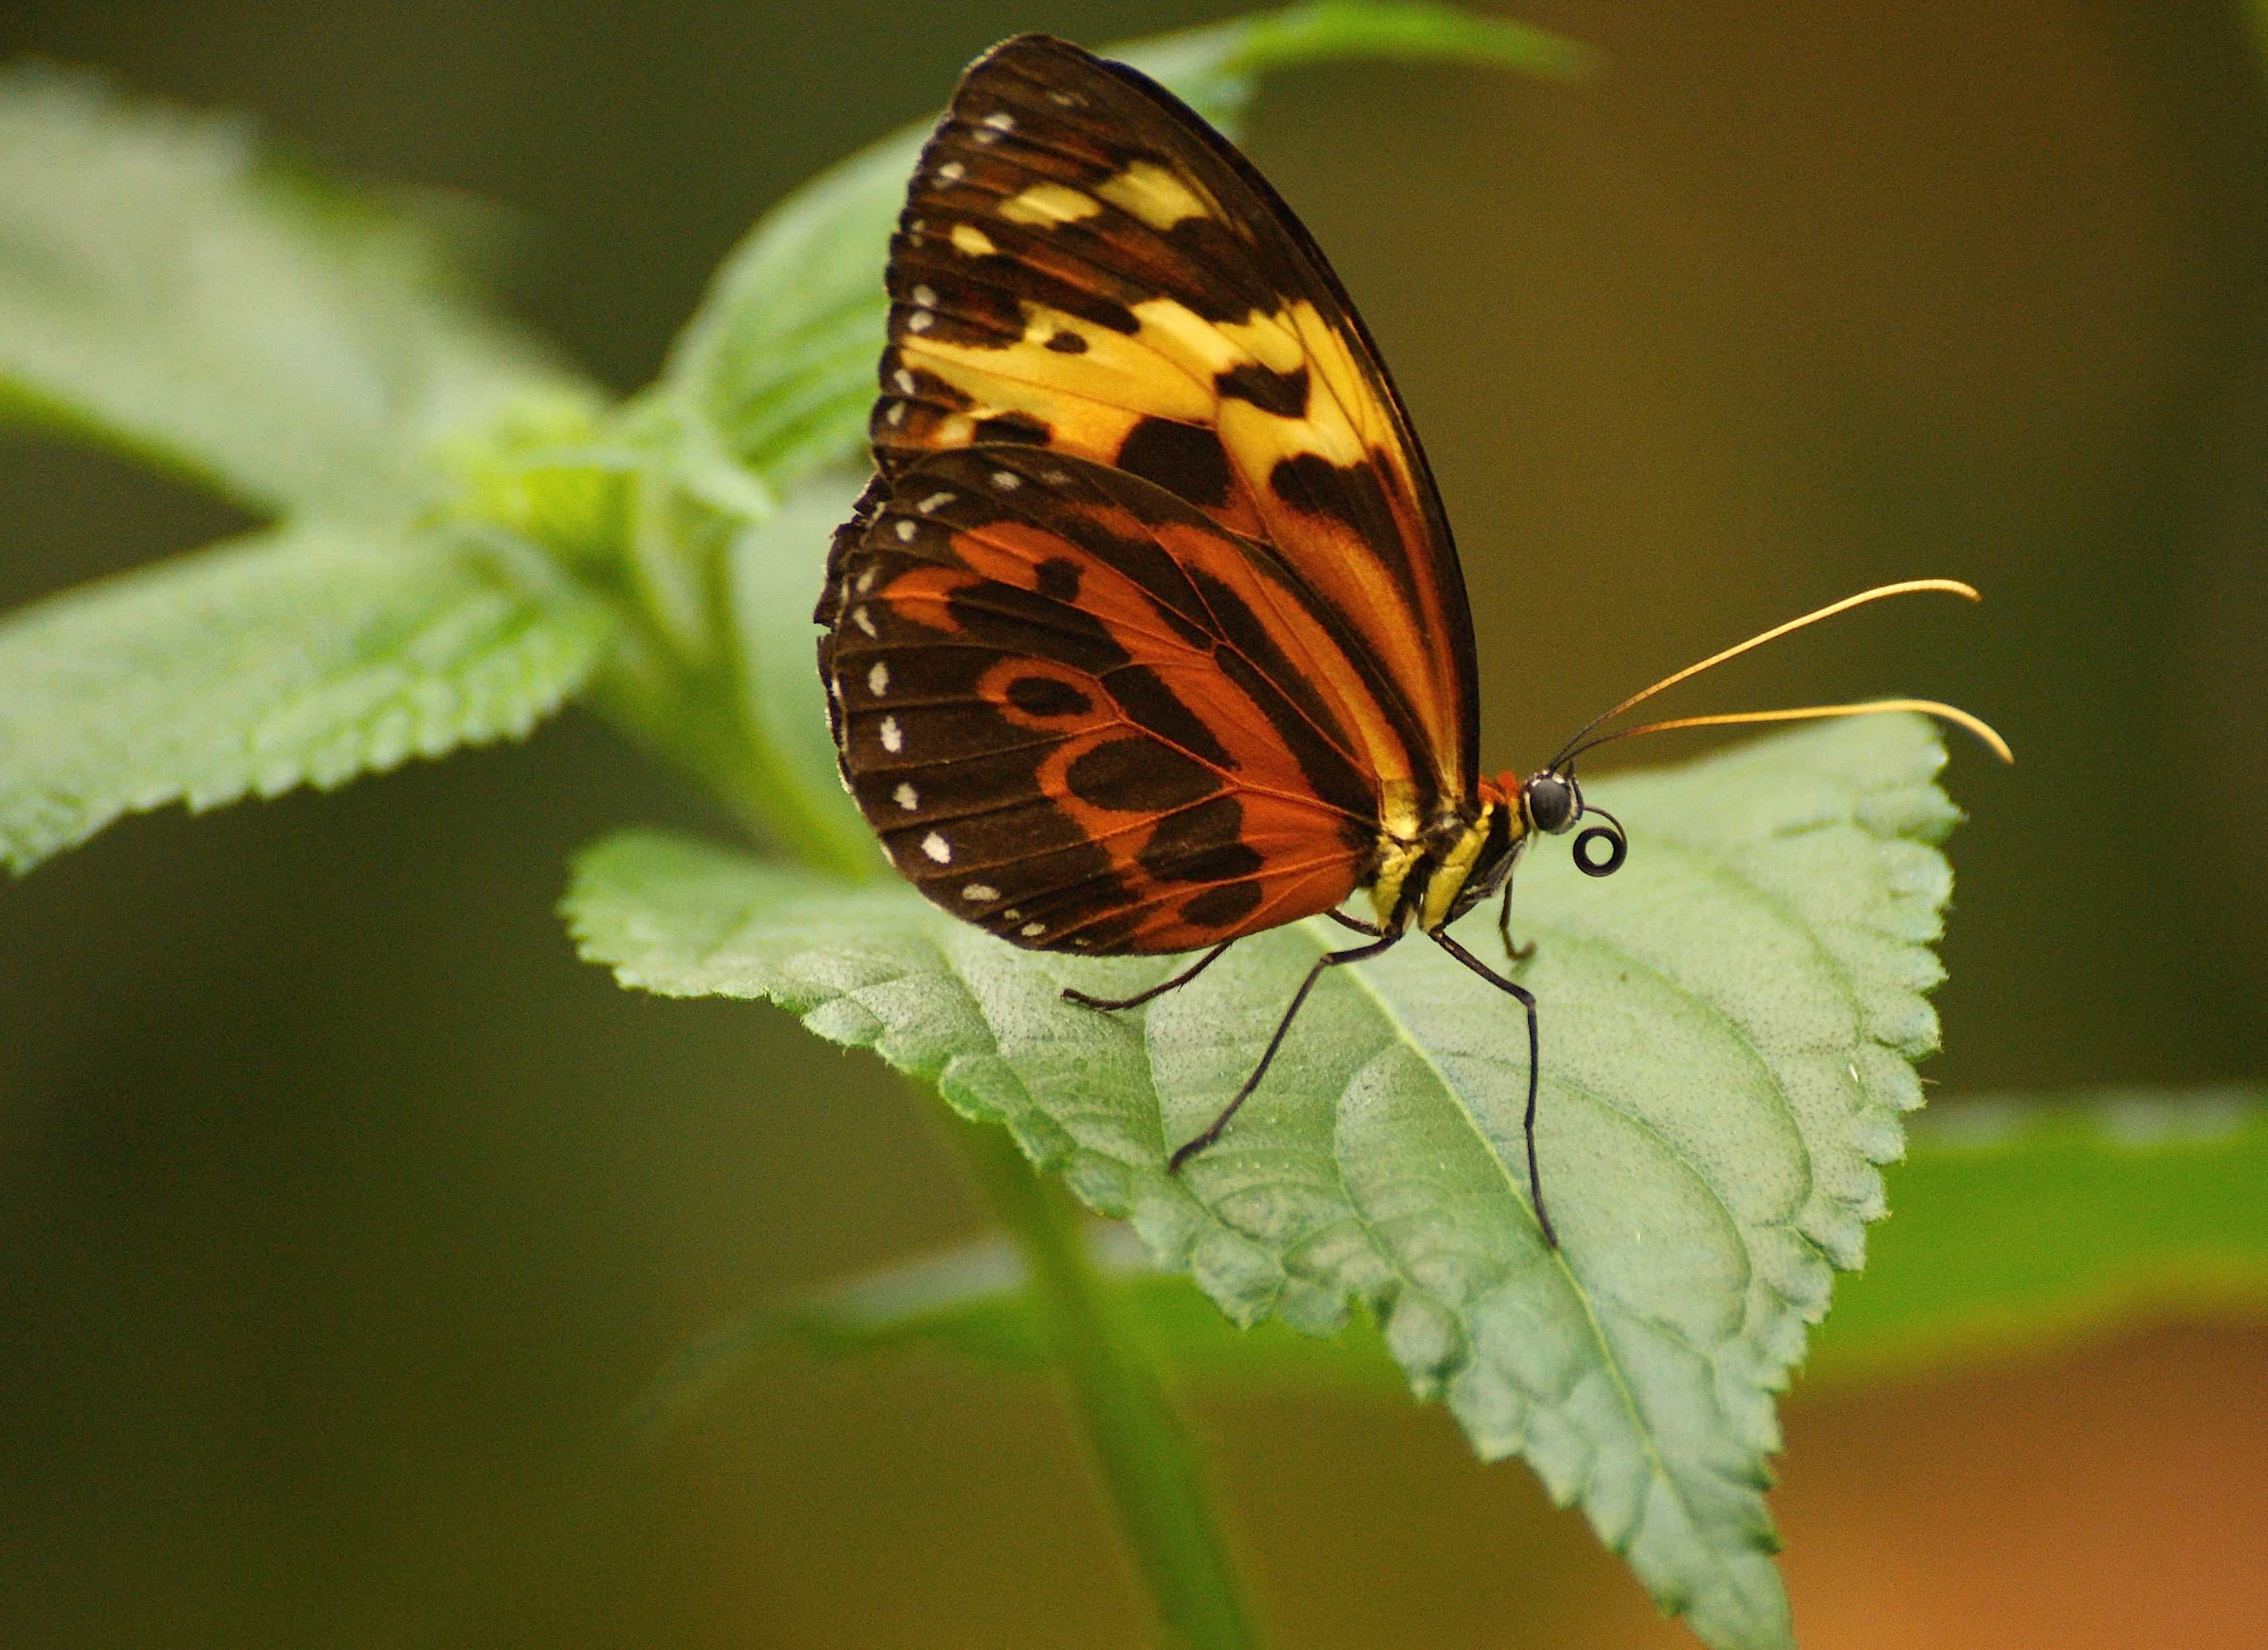 Free picture: insect, butterfly, wildlife, nature, plant ...